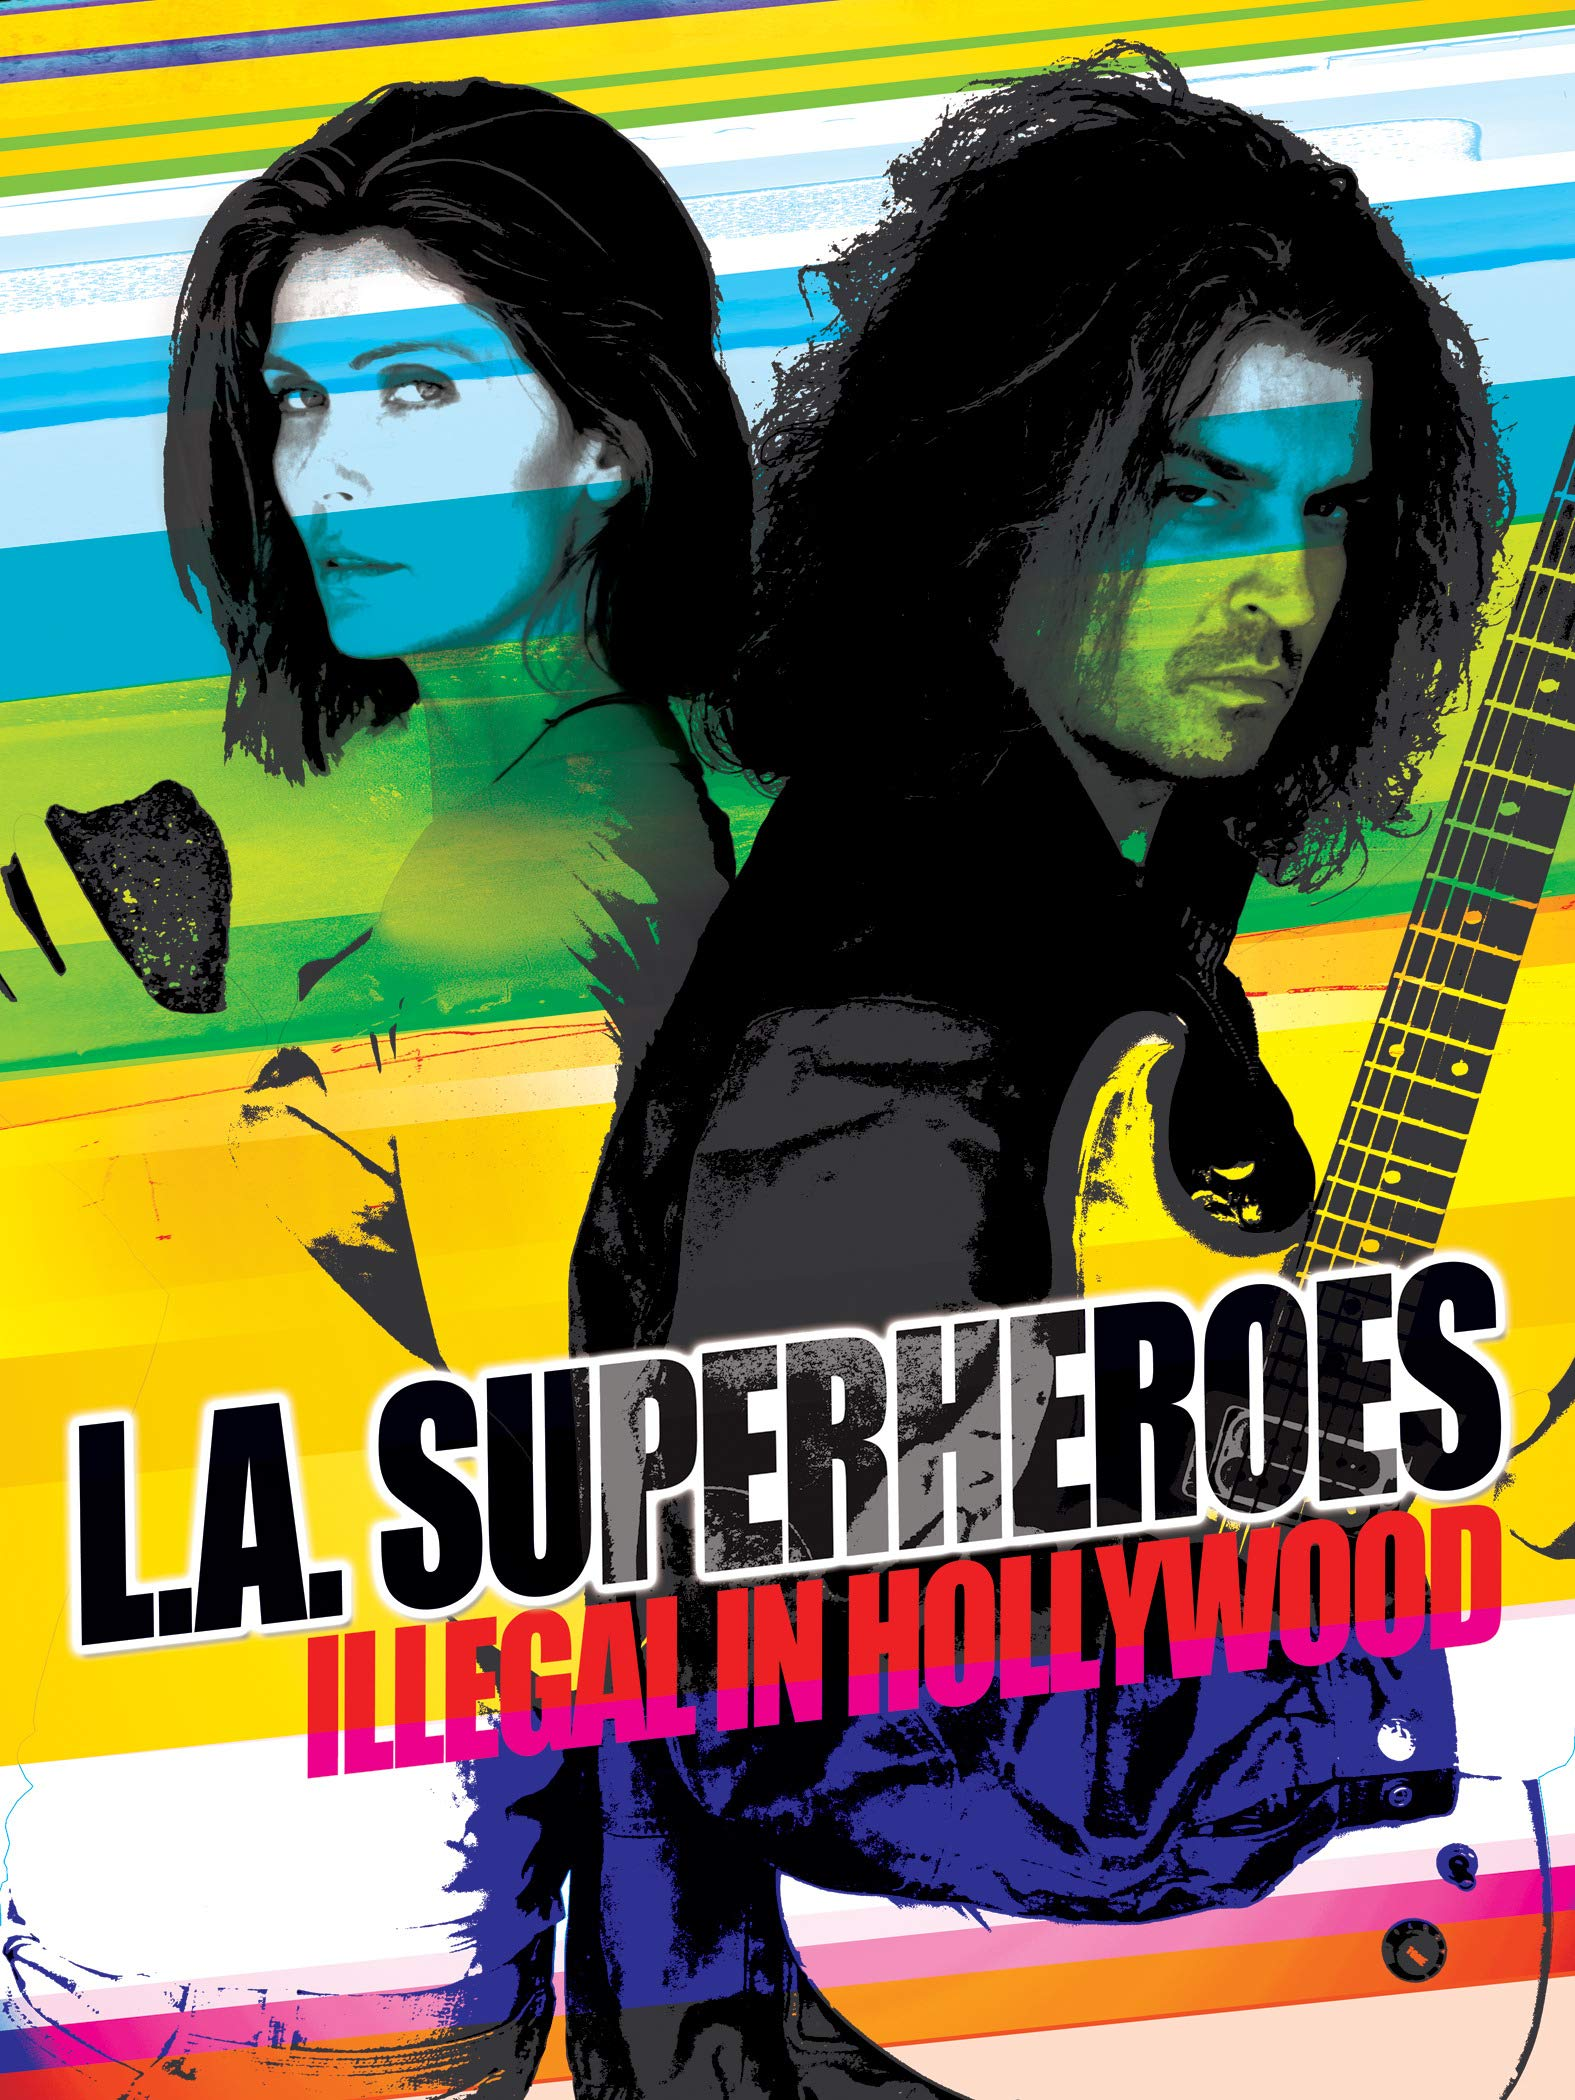 L.A. Superheroes: Illegal in Hollywood